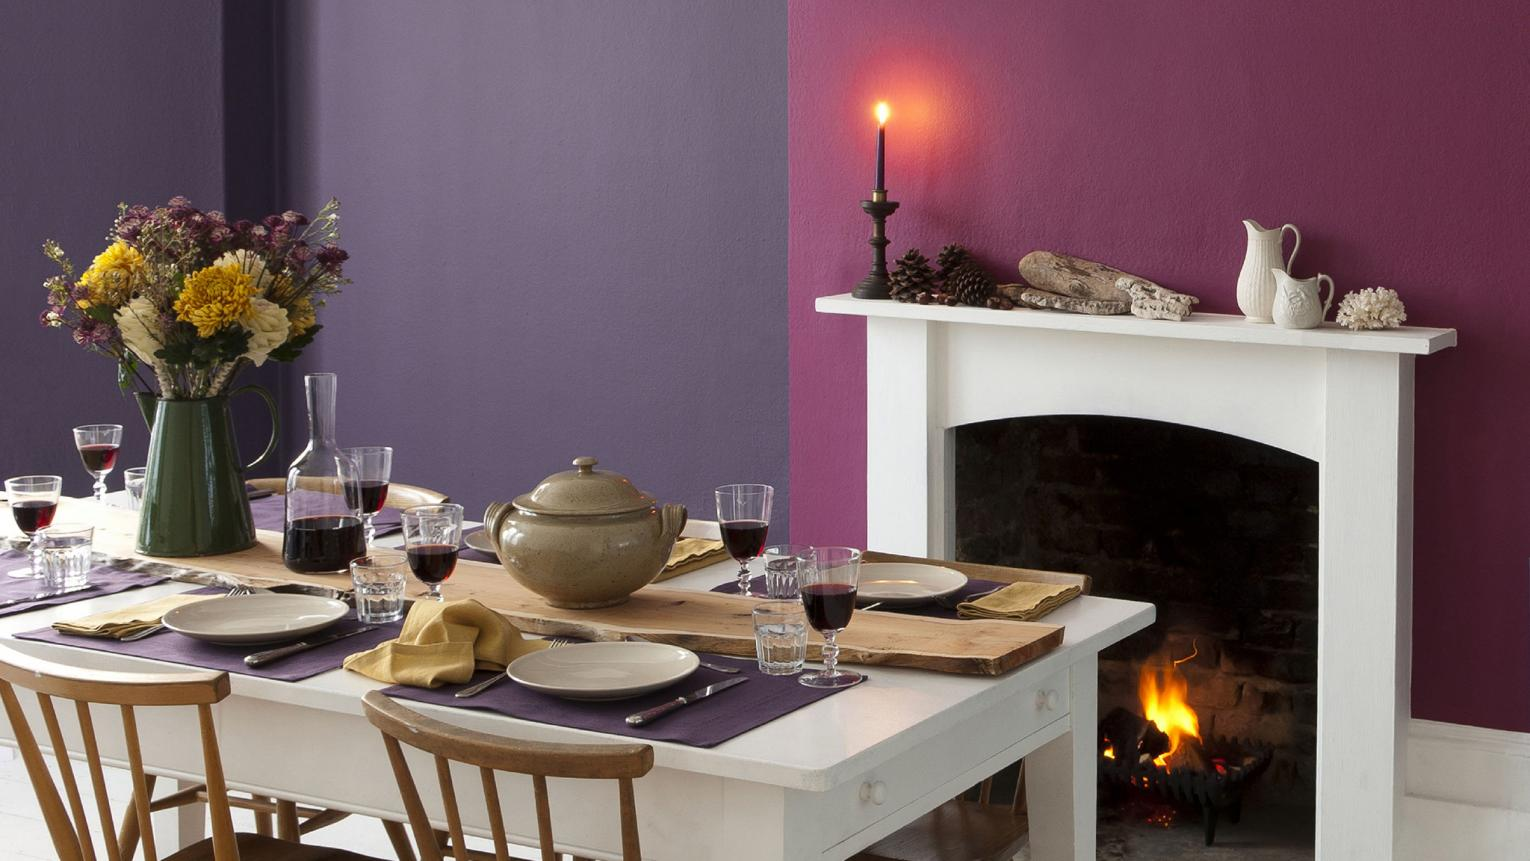 Feeding the family? Entertaining the crowds? Use colour to create a warm dining room that radiates warmth.